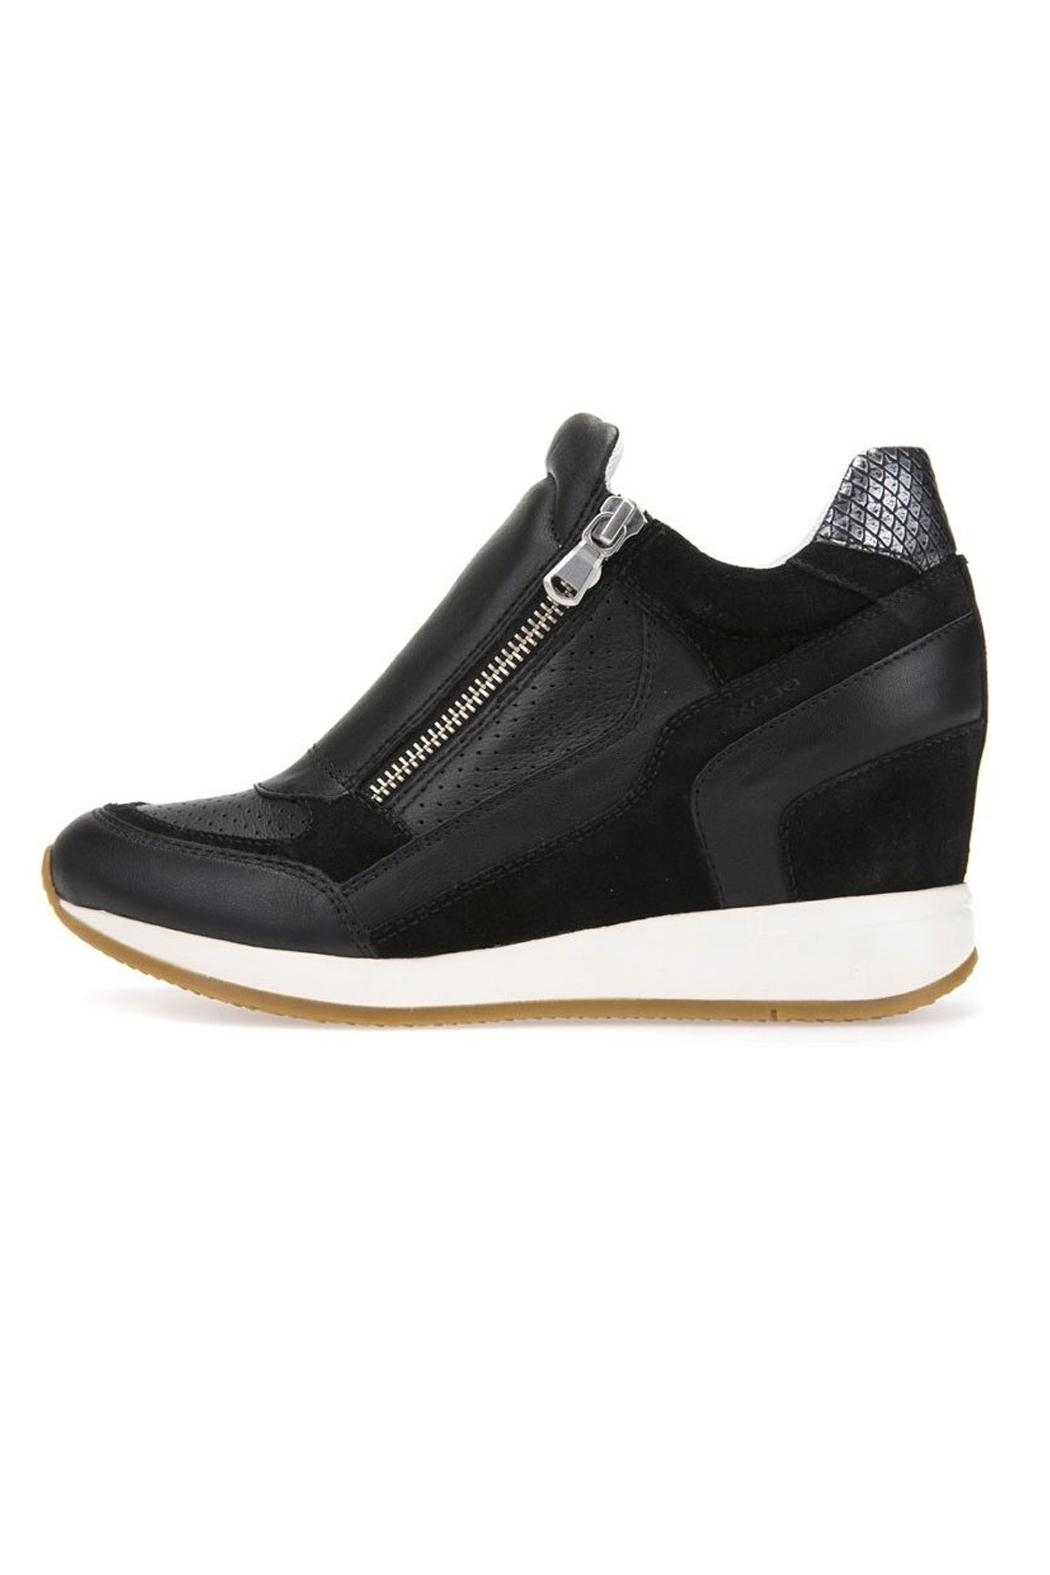 d548bd64c8f Geox Nydame Wedge Sneaker from South Carolina by Baehr Feet Shoe ...